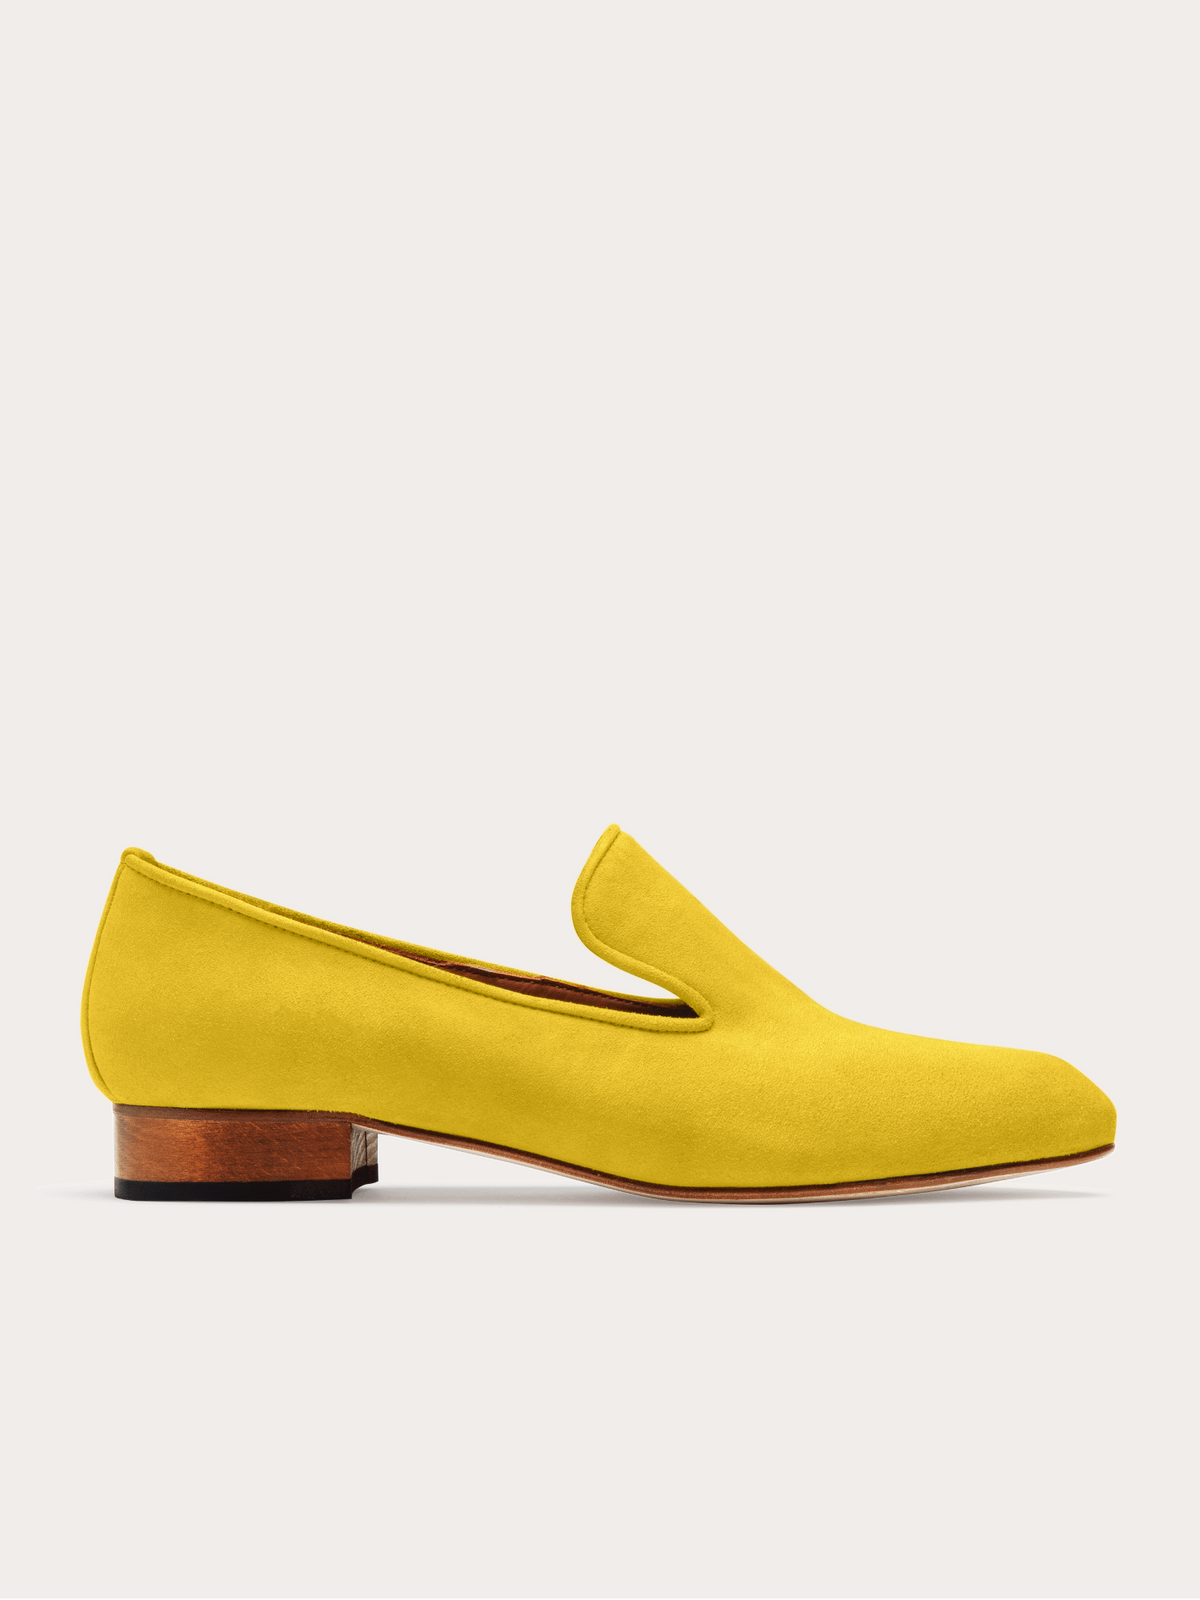 The Town Slipper in Canary